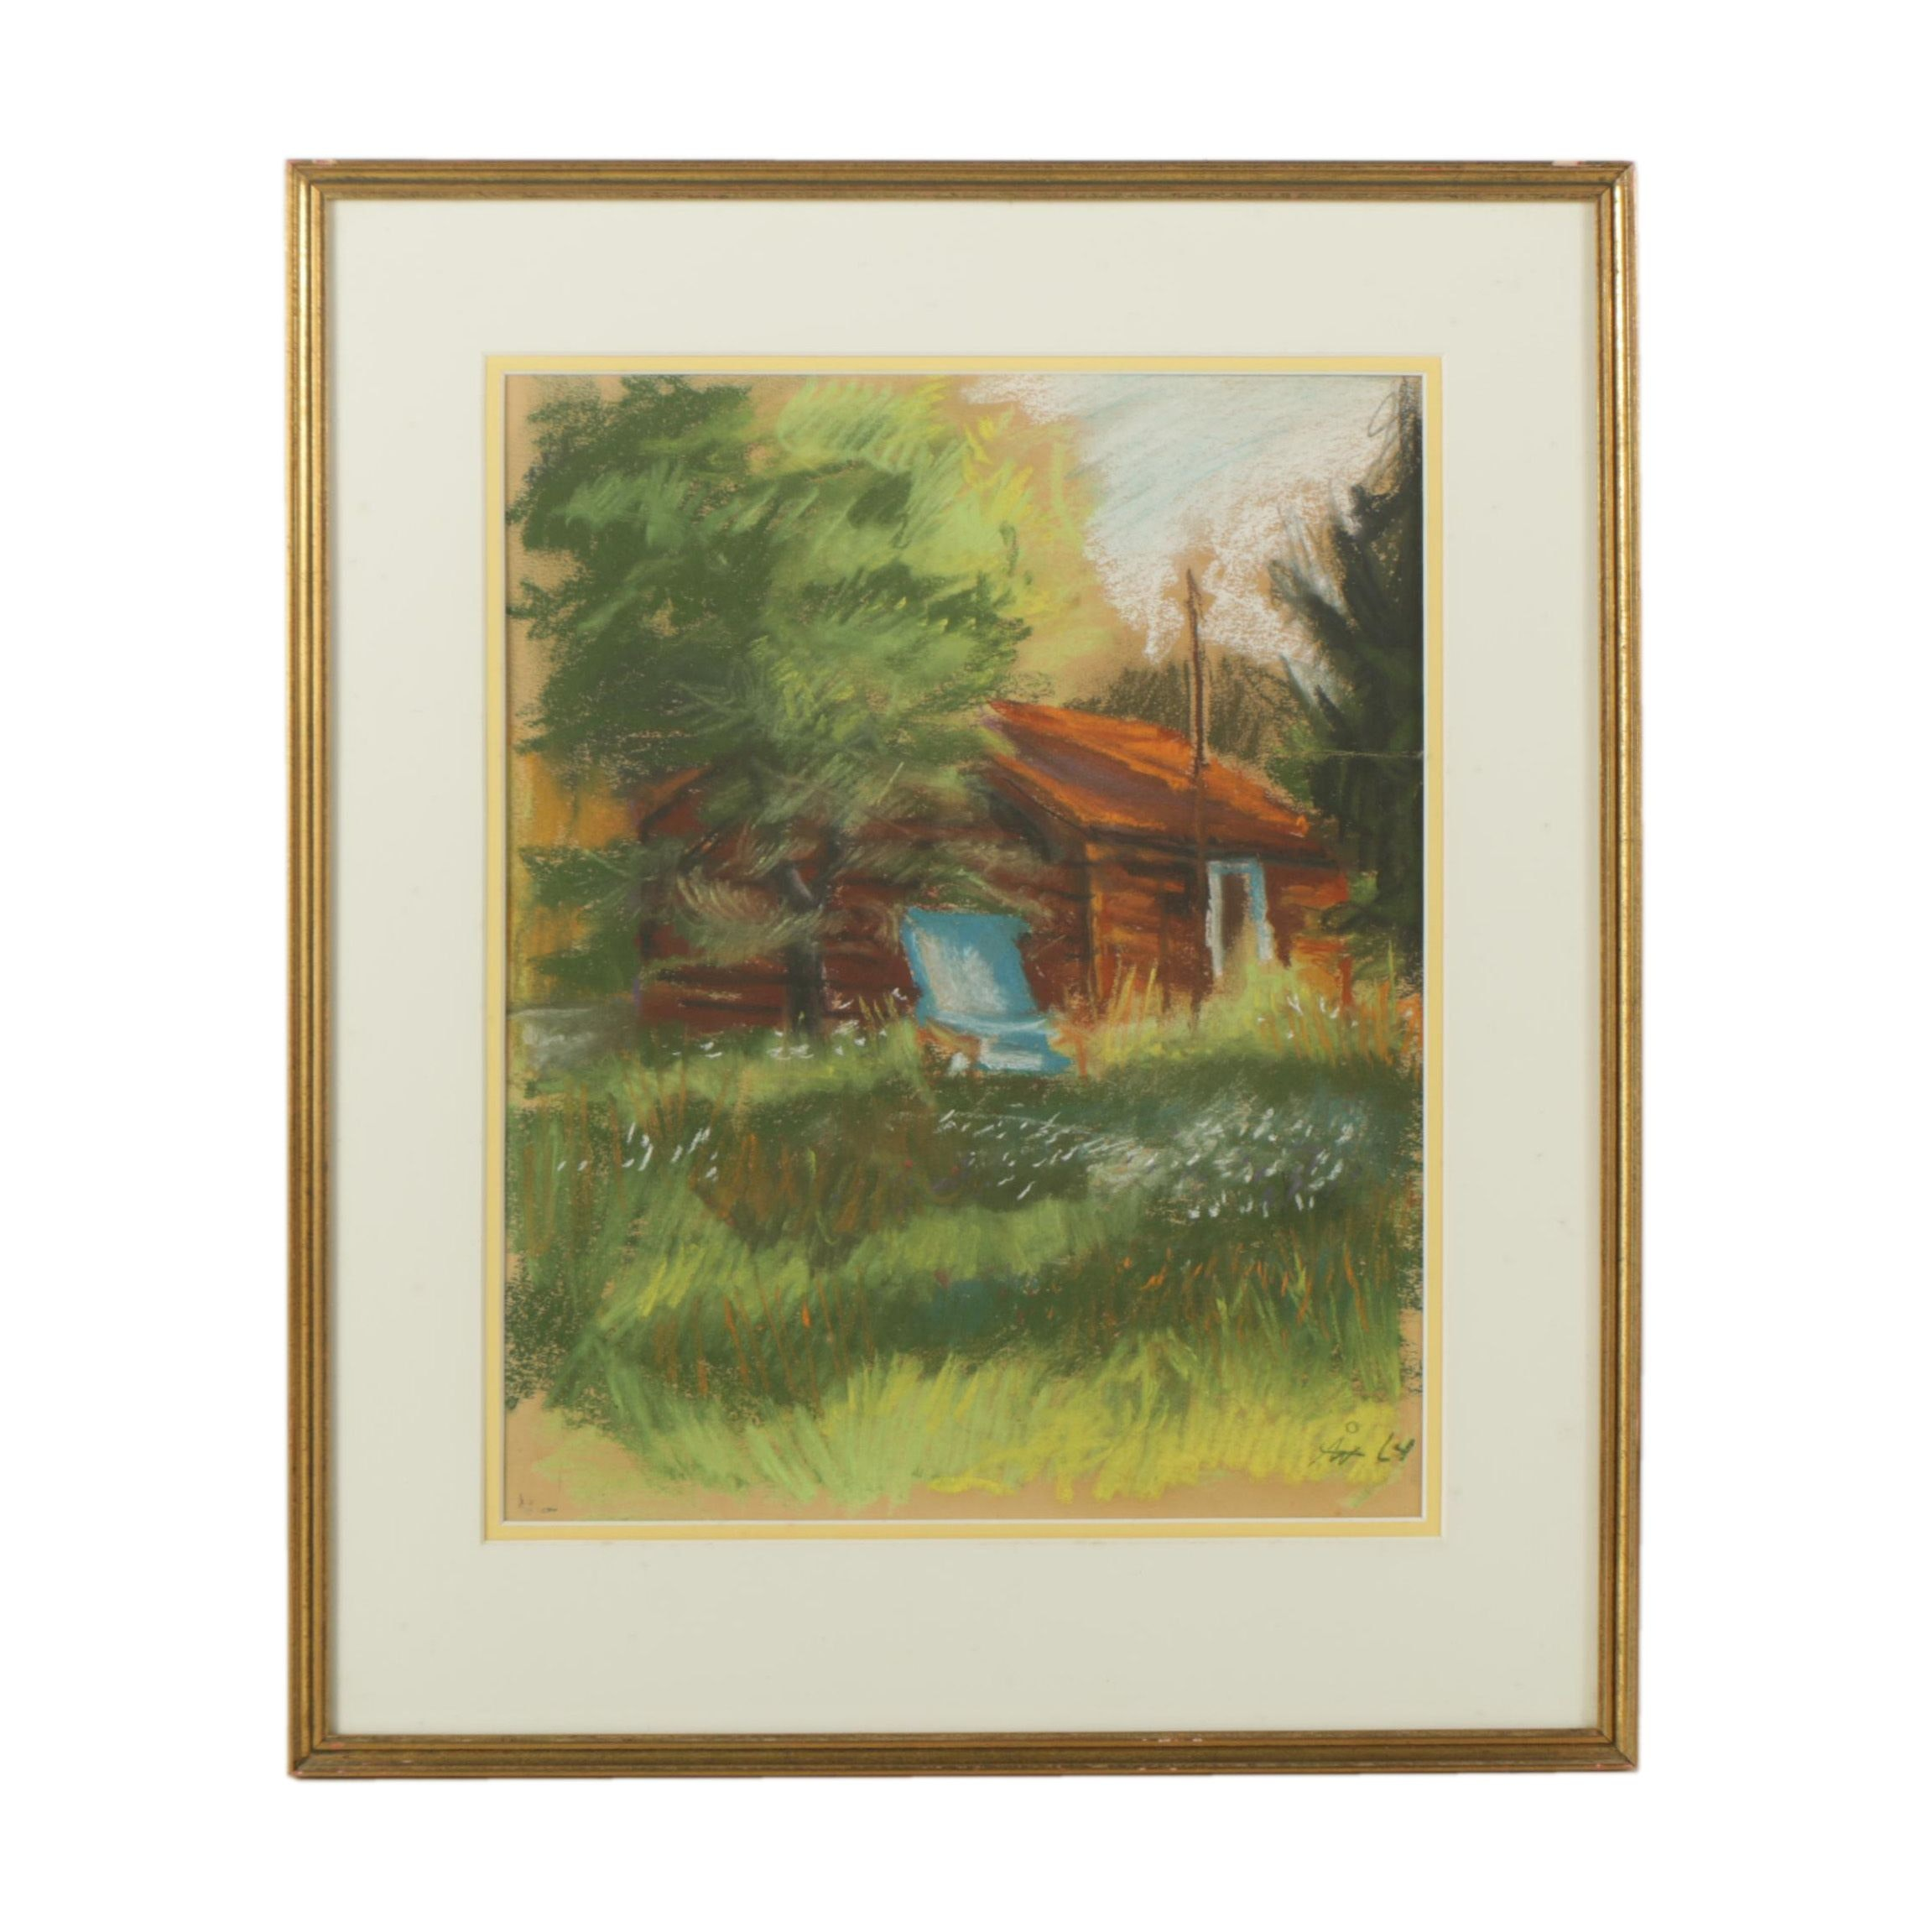 A.W. Pastel Drawing of a Cabin